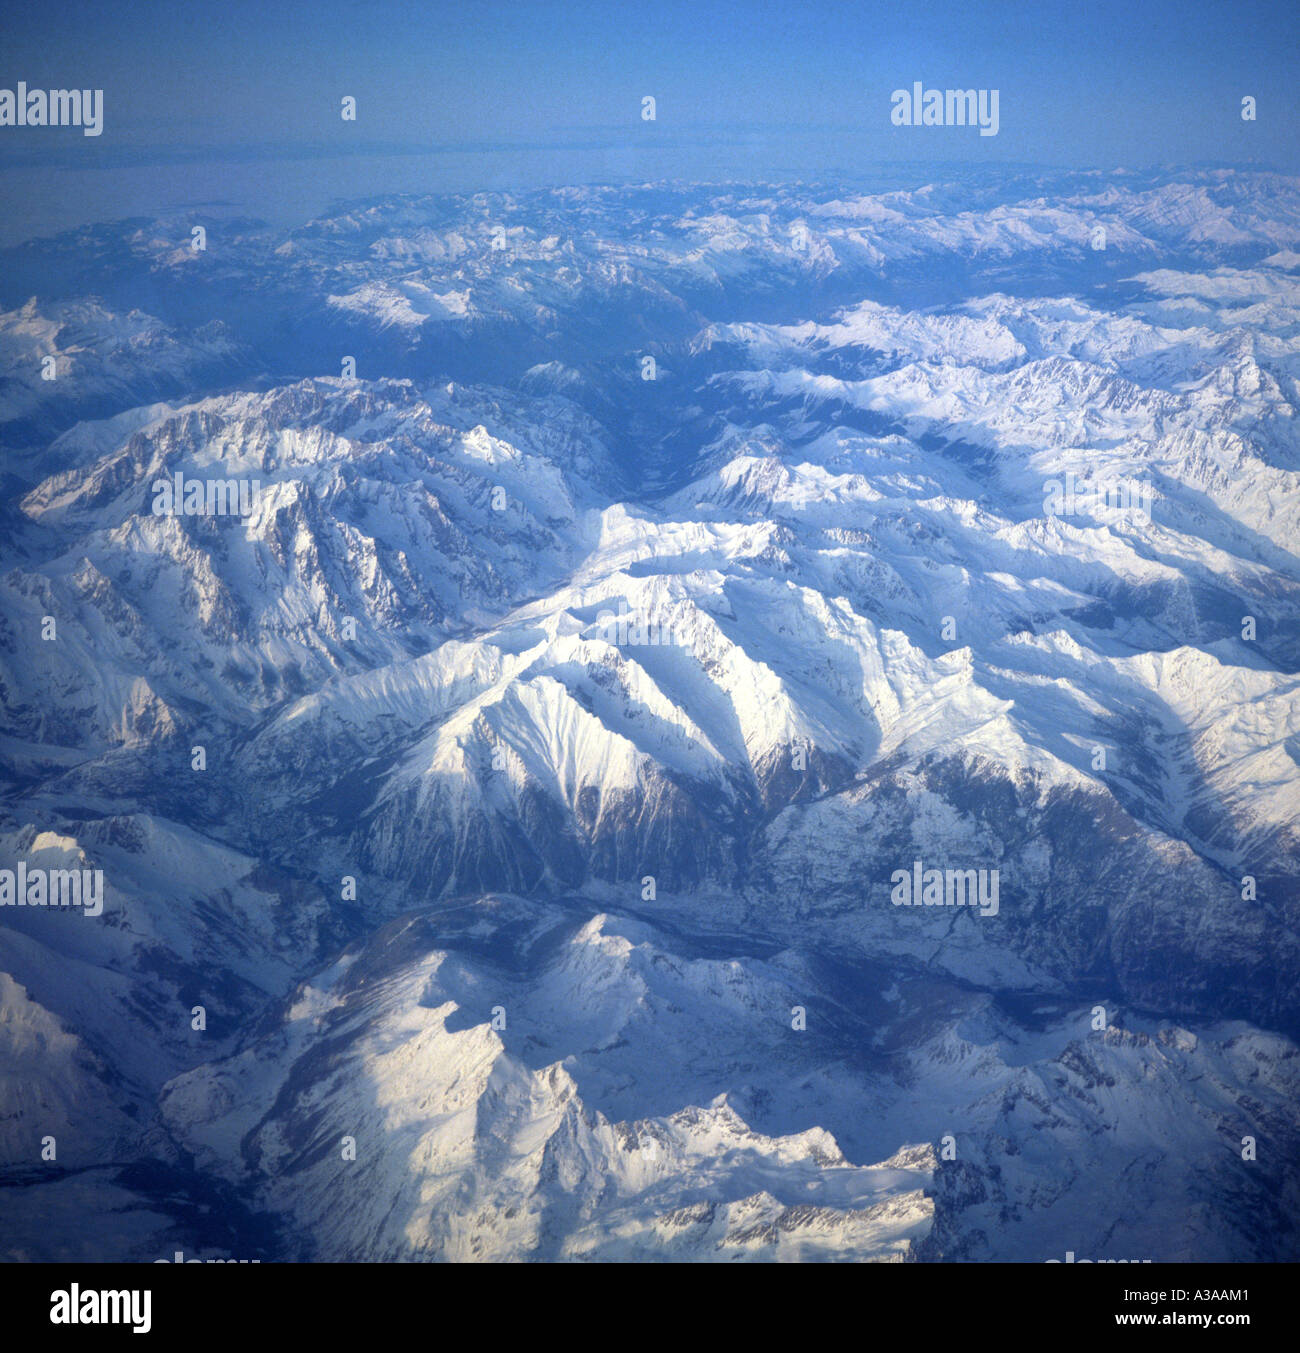 Aerial view of alpine mountain peaks covered by ice and snow - Stock Image